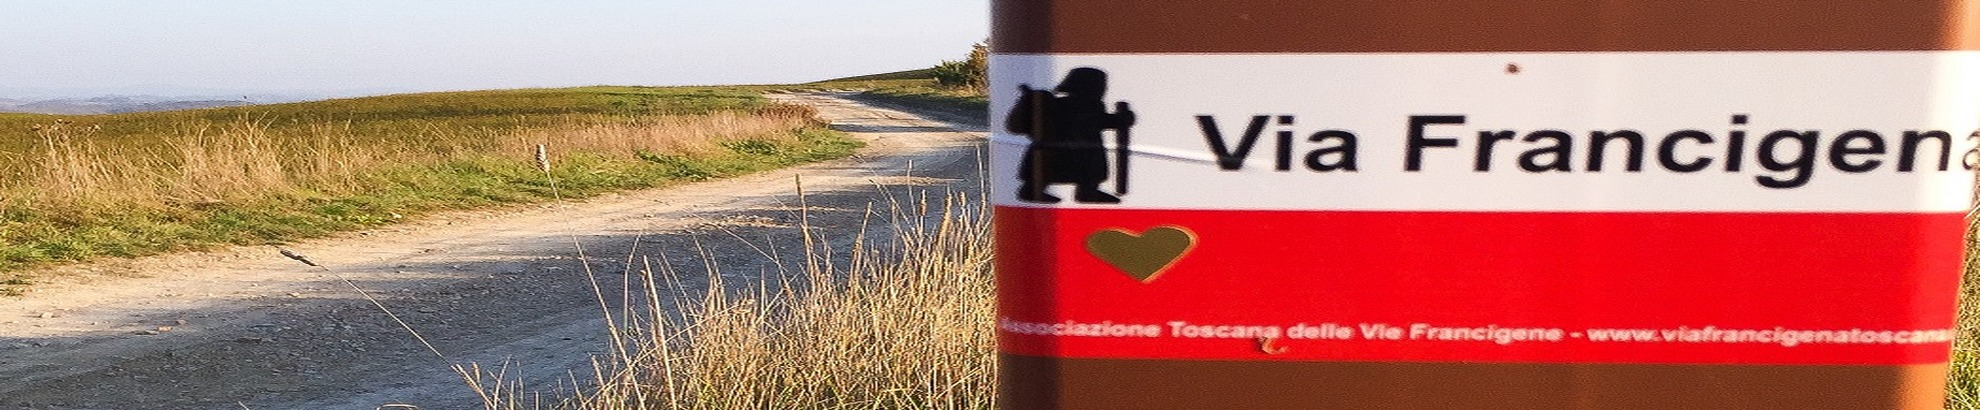 La Via Francigena, da Siena a Roma - Self Guided